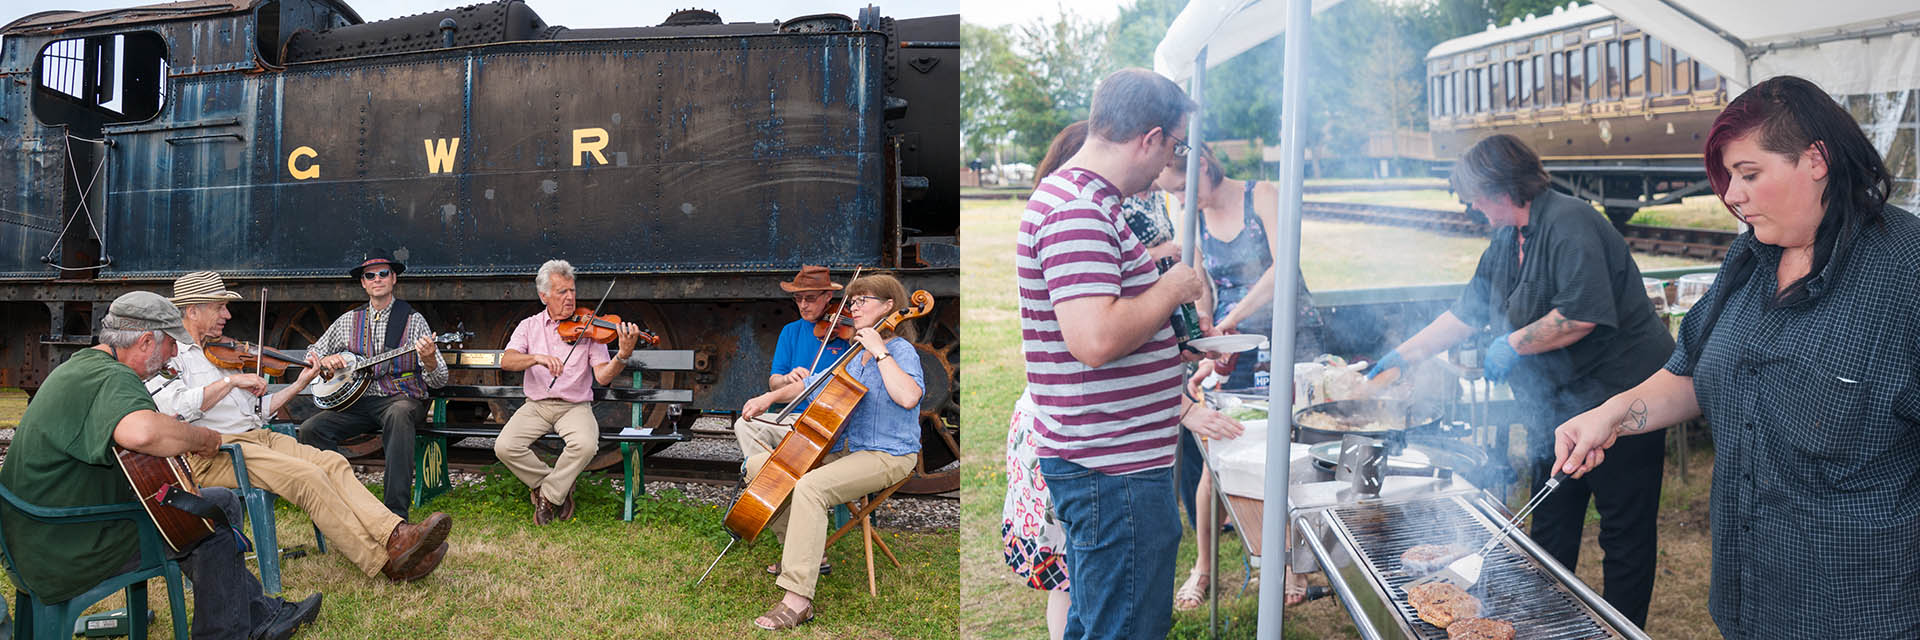 Summer BBQ event at Didcot Railway Centre